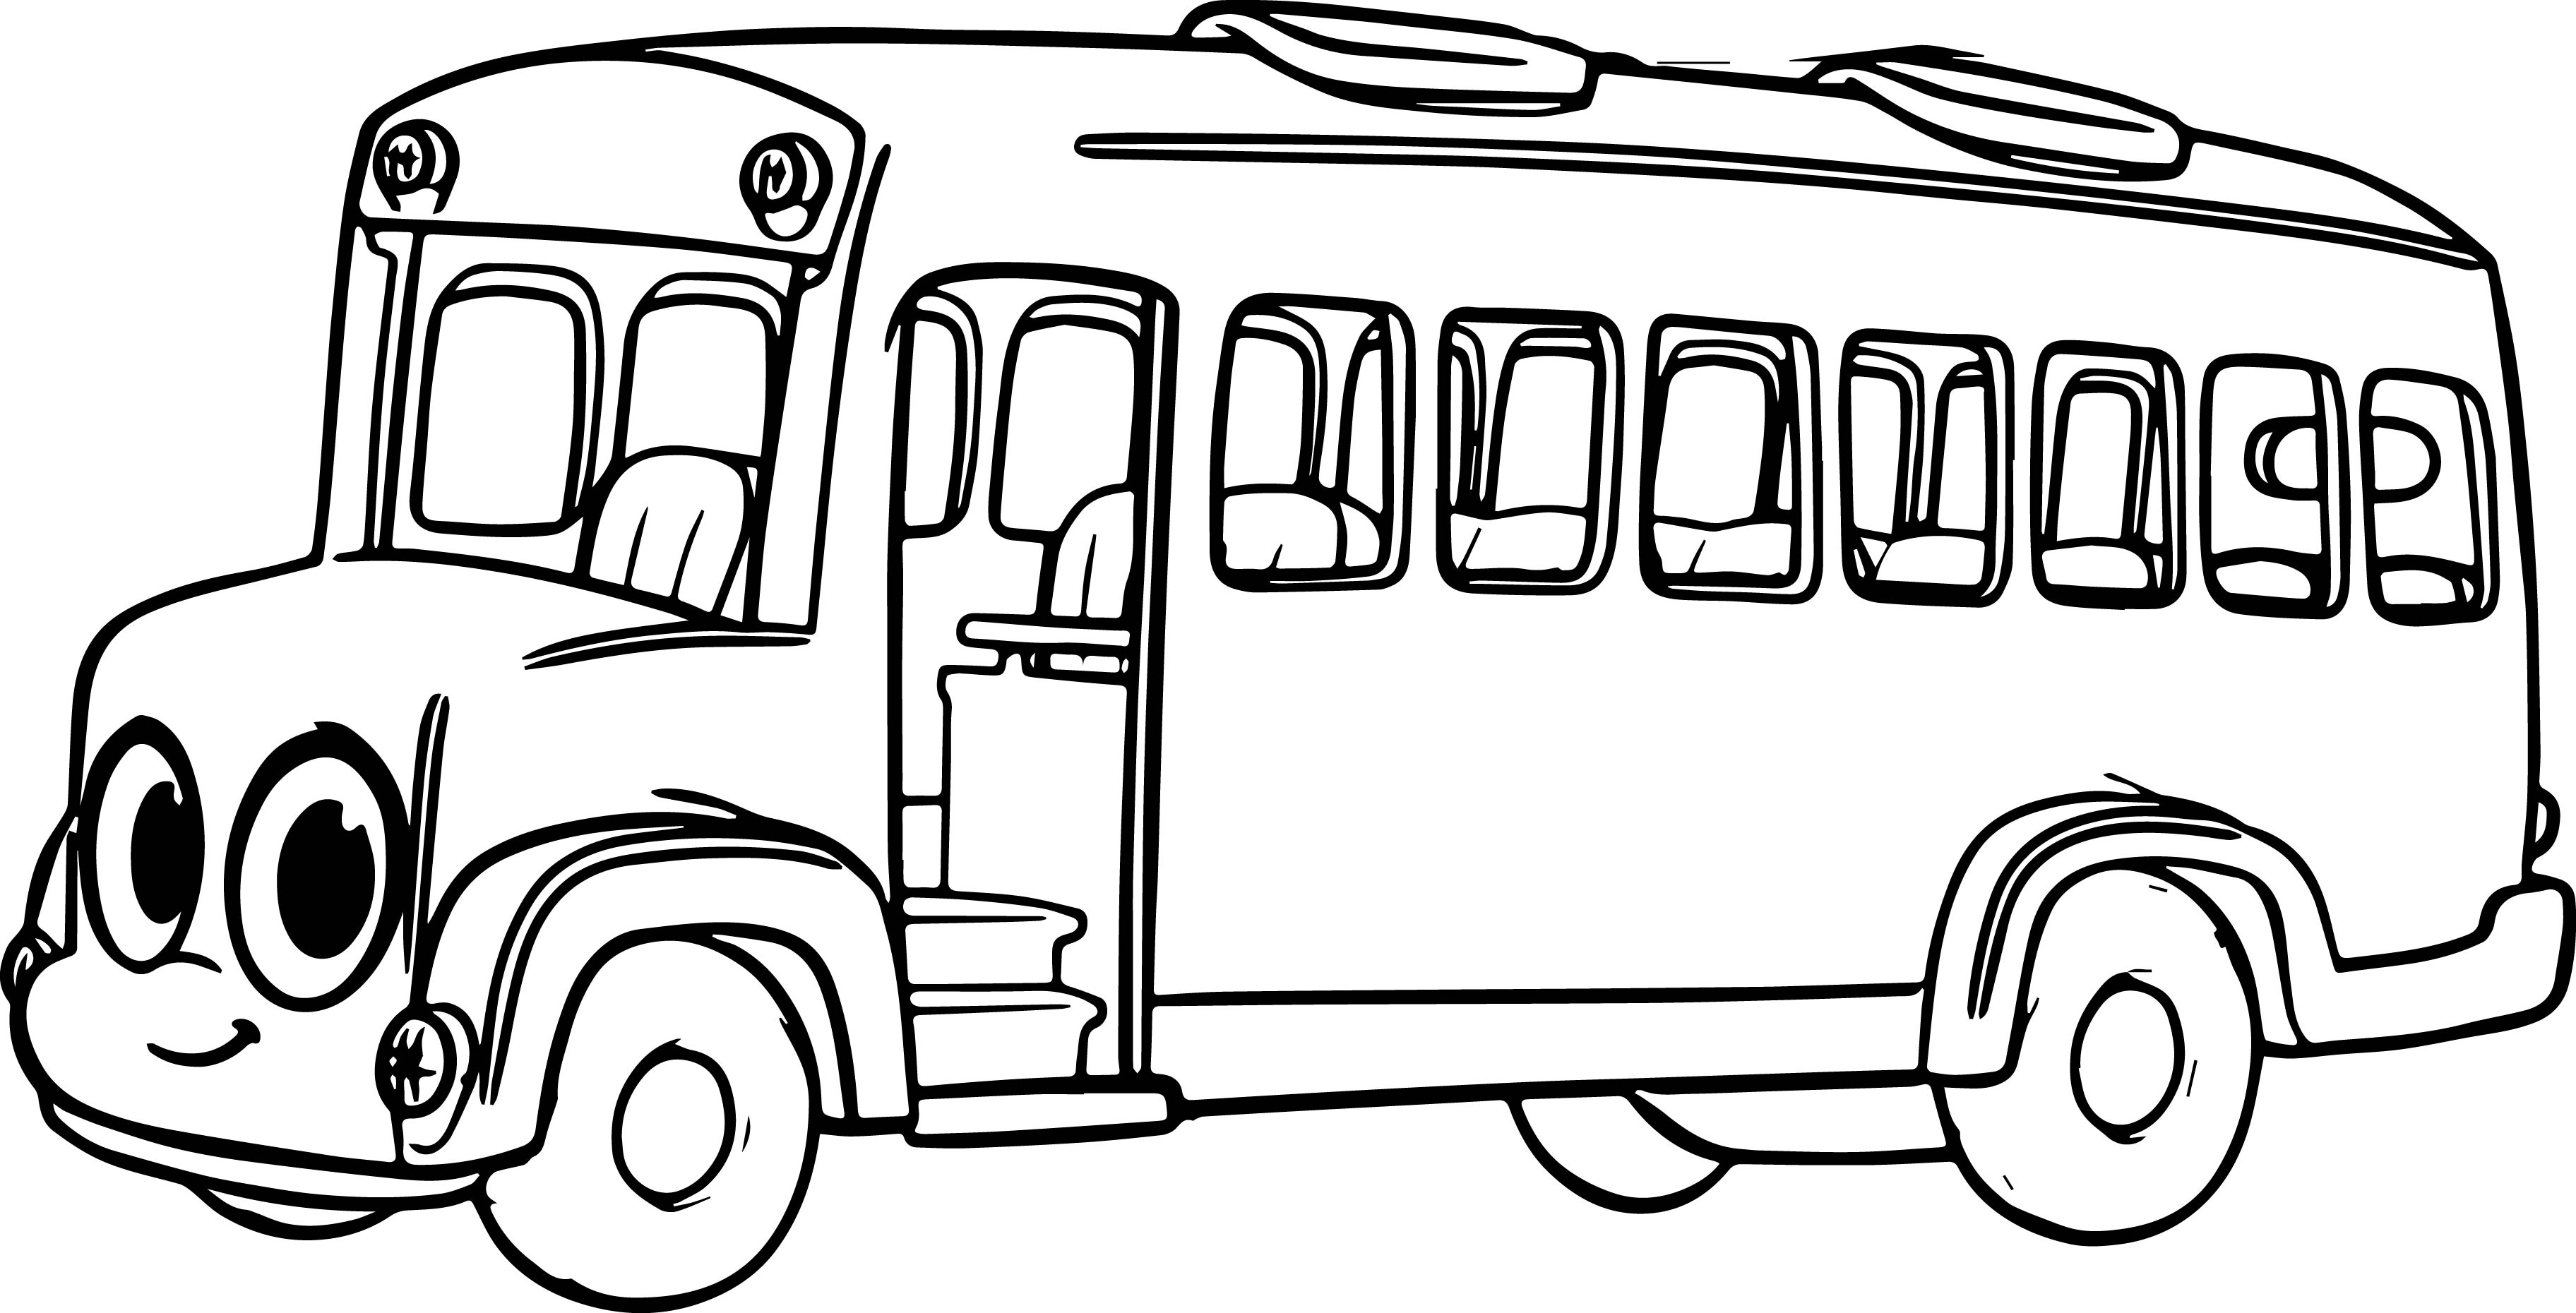 3648x1860 School Bus Transportation Coloring Pages For Kids Printable Within